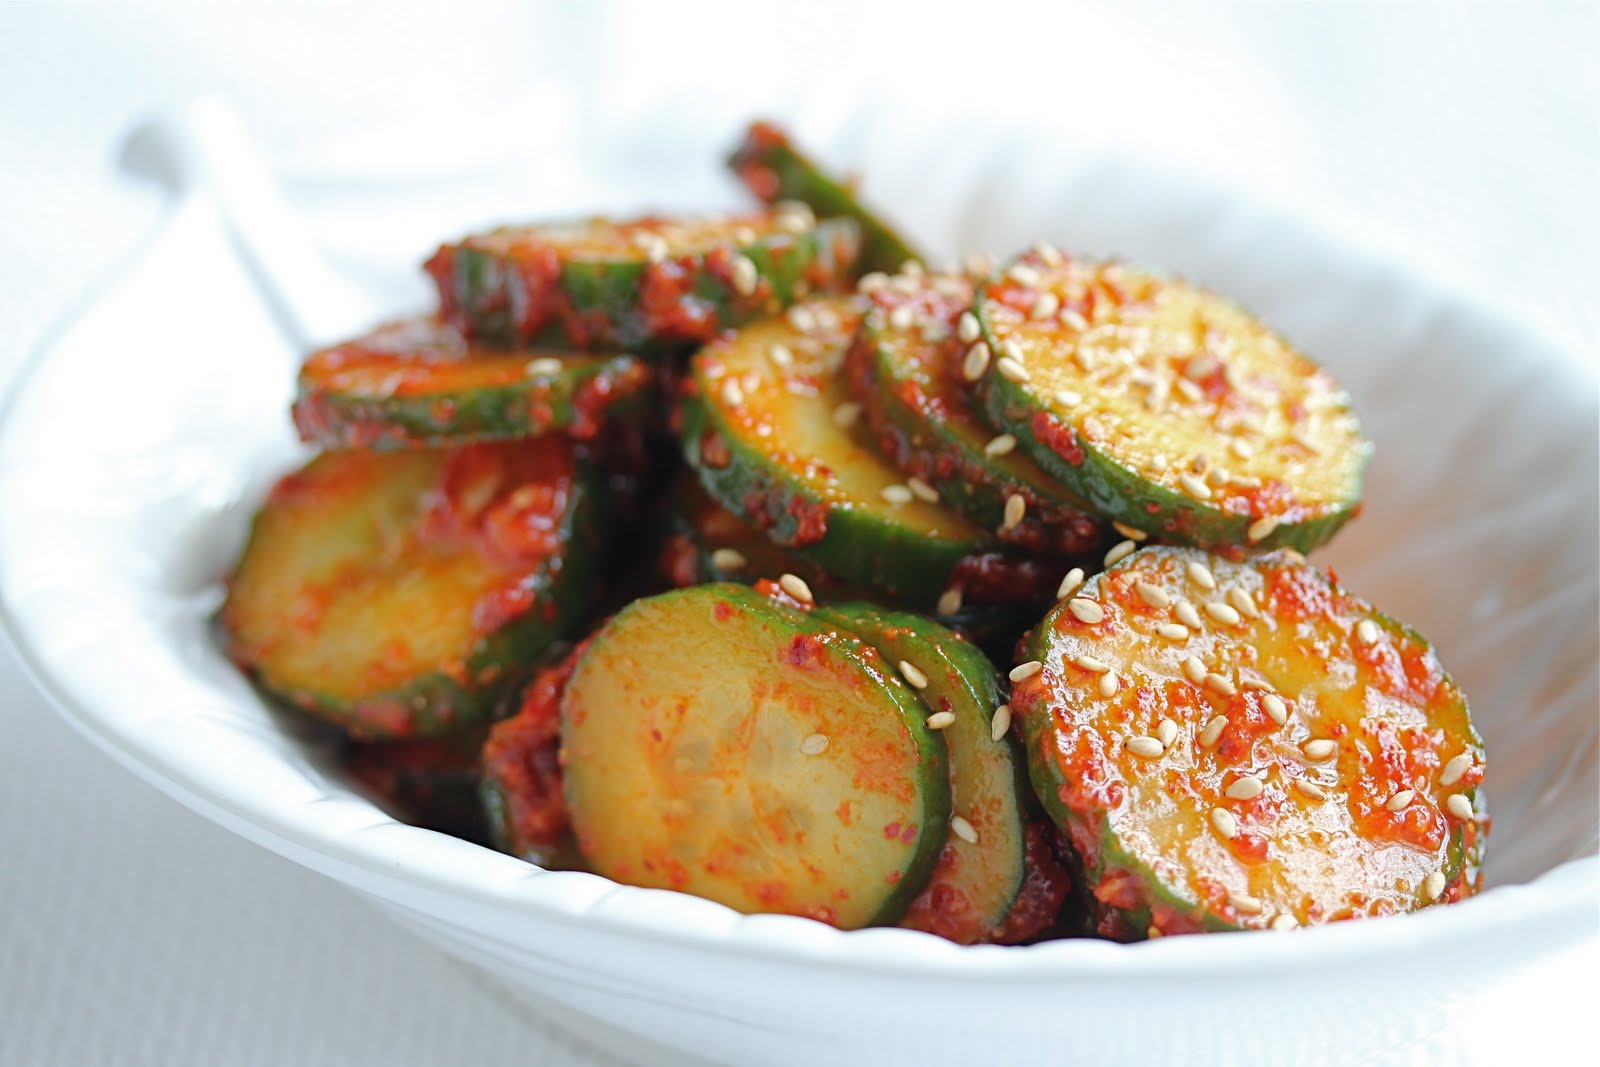 Korean Spicy Cucumber Salad Banchan - Jeanette's Healthy Living